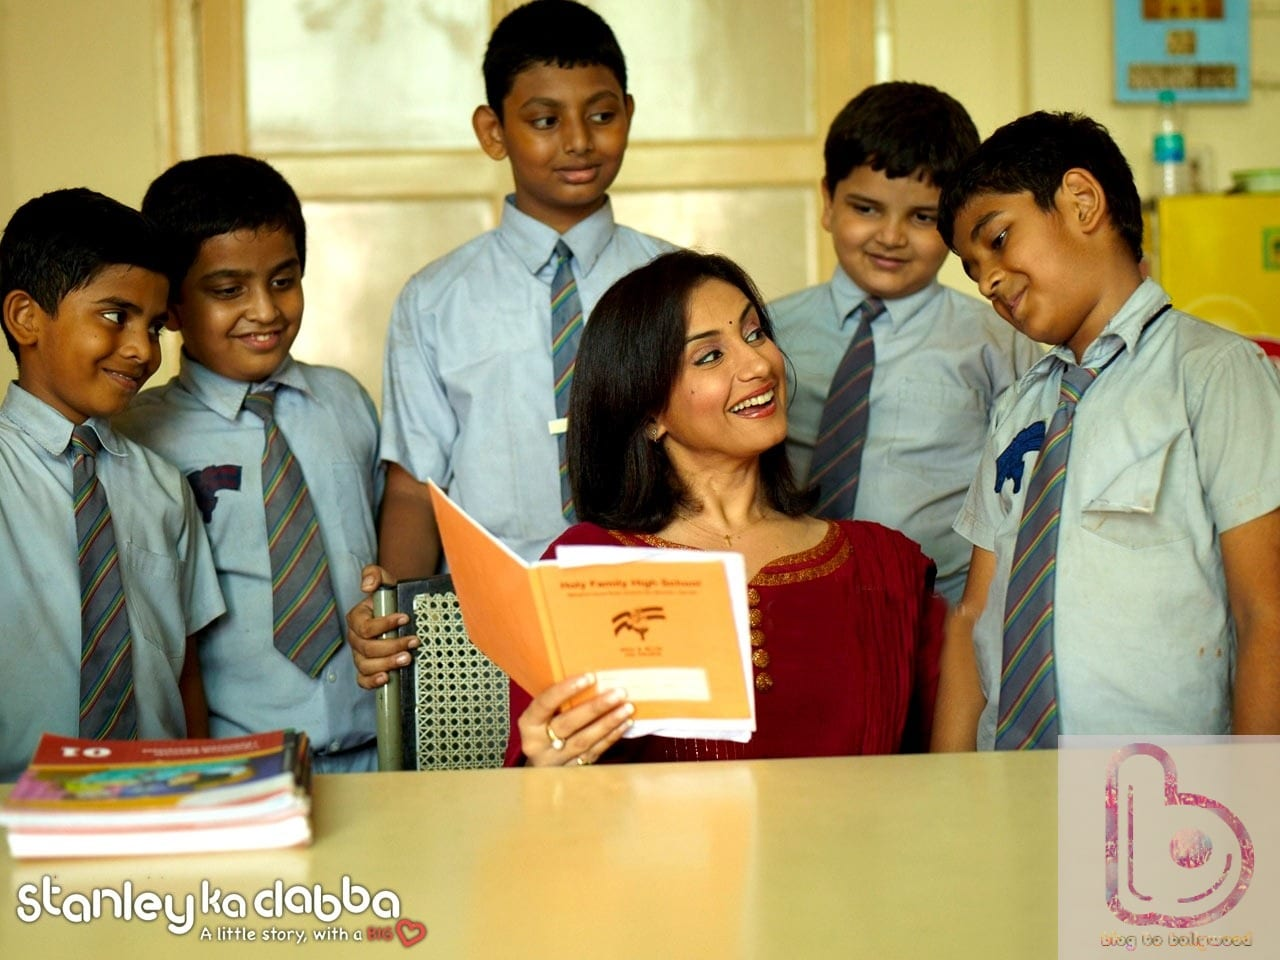 Teacher's Day Special: Dedicate a movie to your teacher - Stanley Ka Dabba